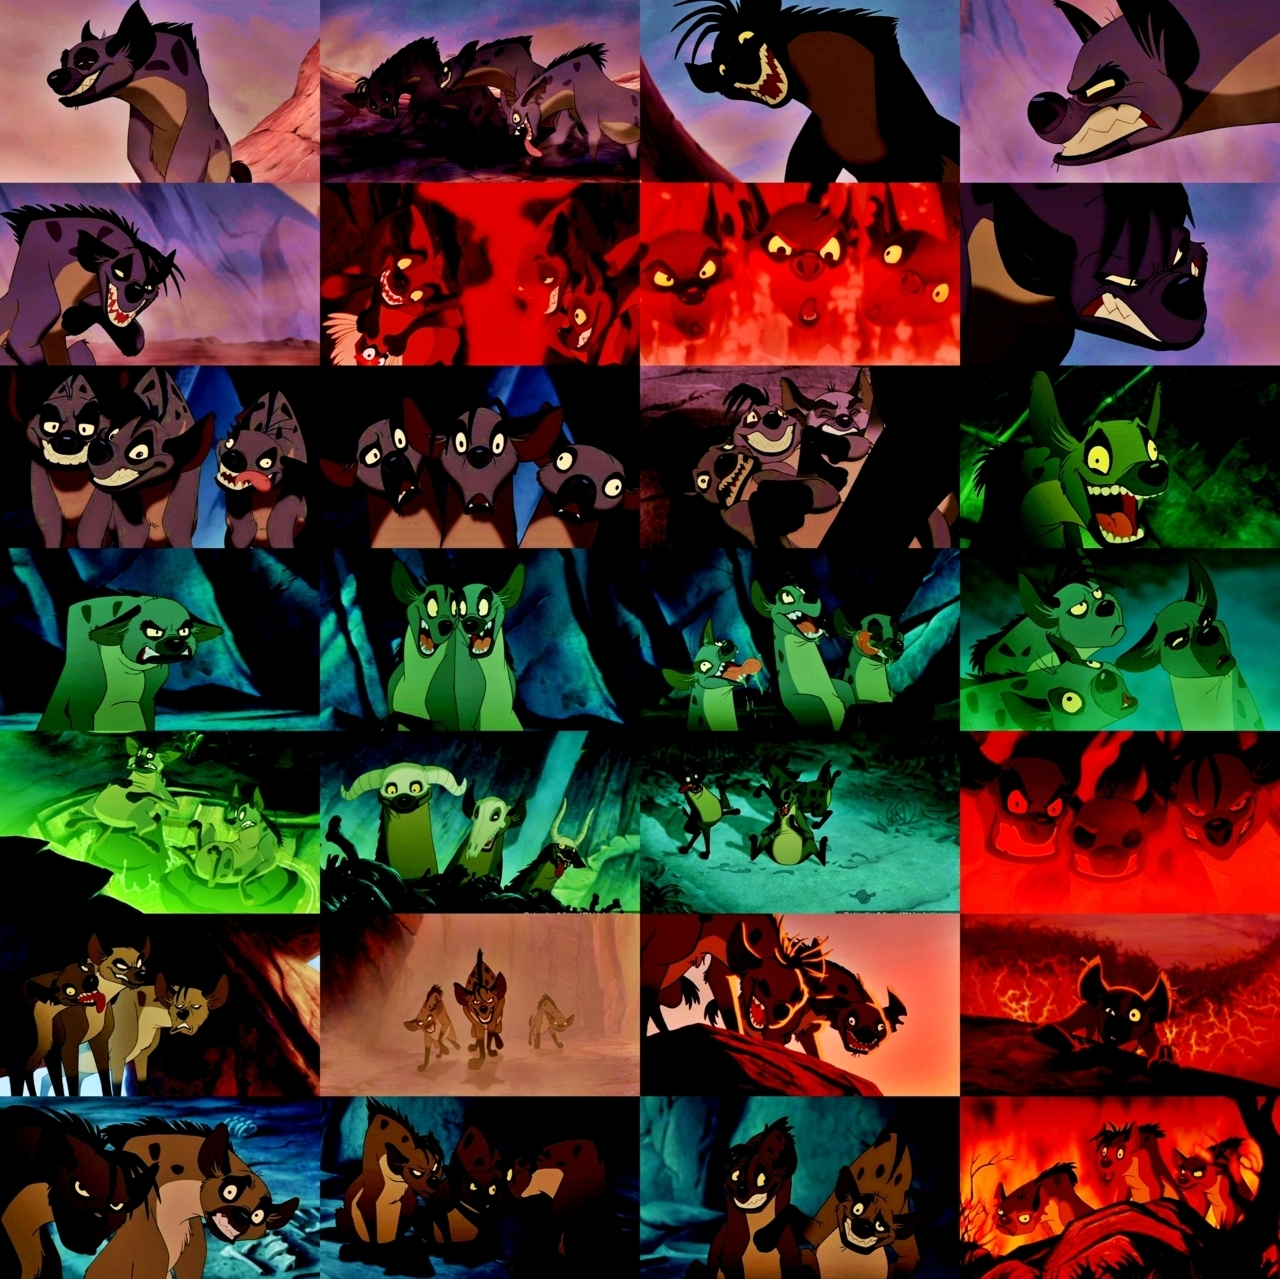 Awesome Hyena collage